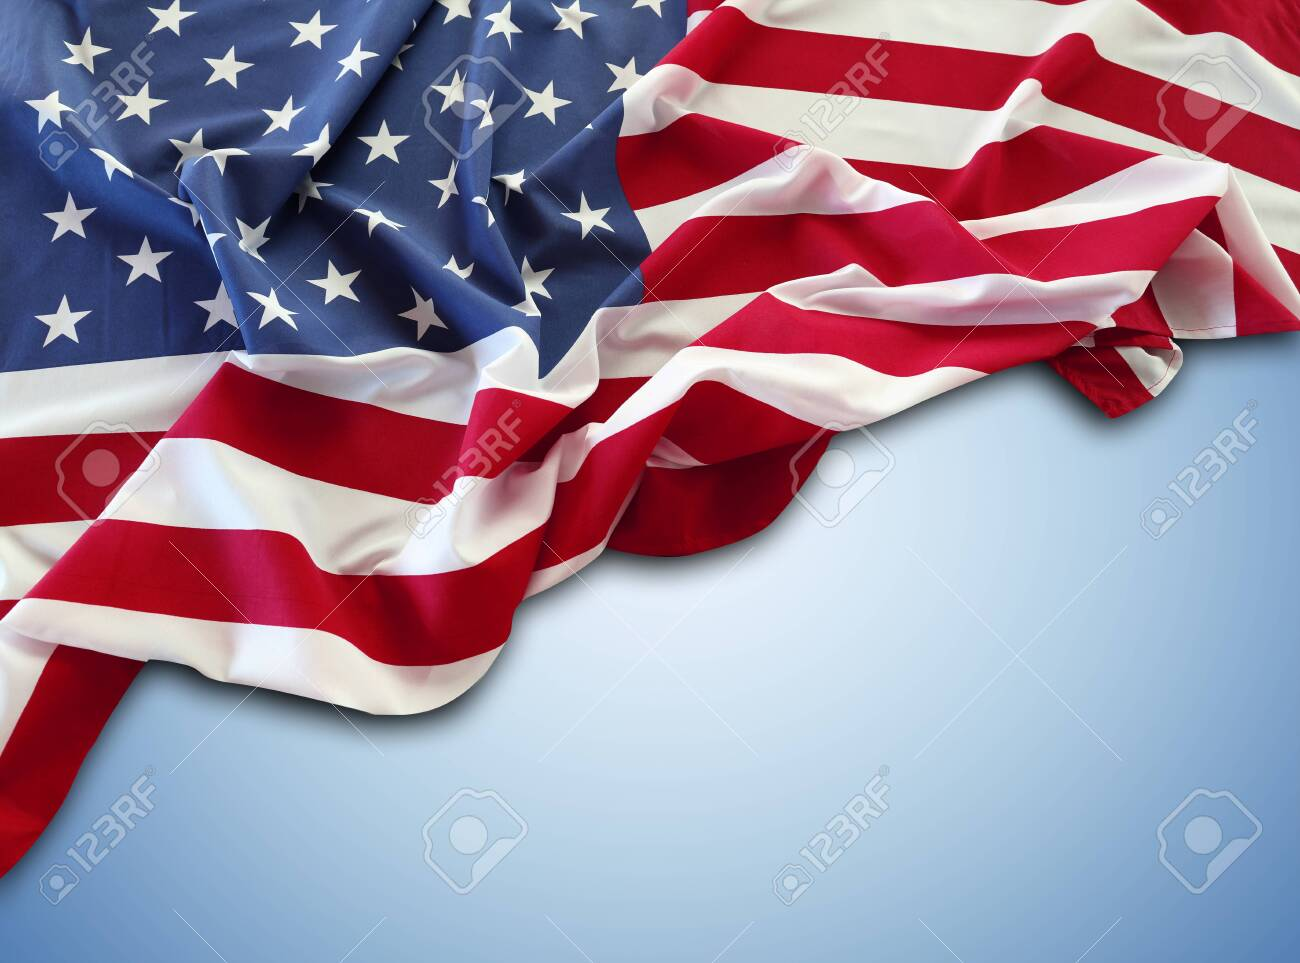 American flag on blue background - 149606530